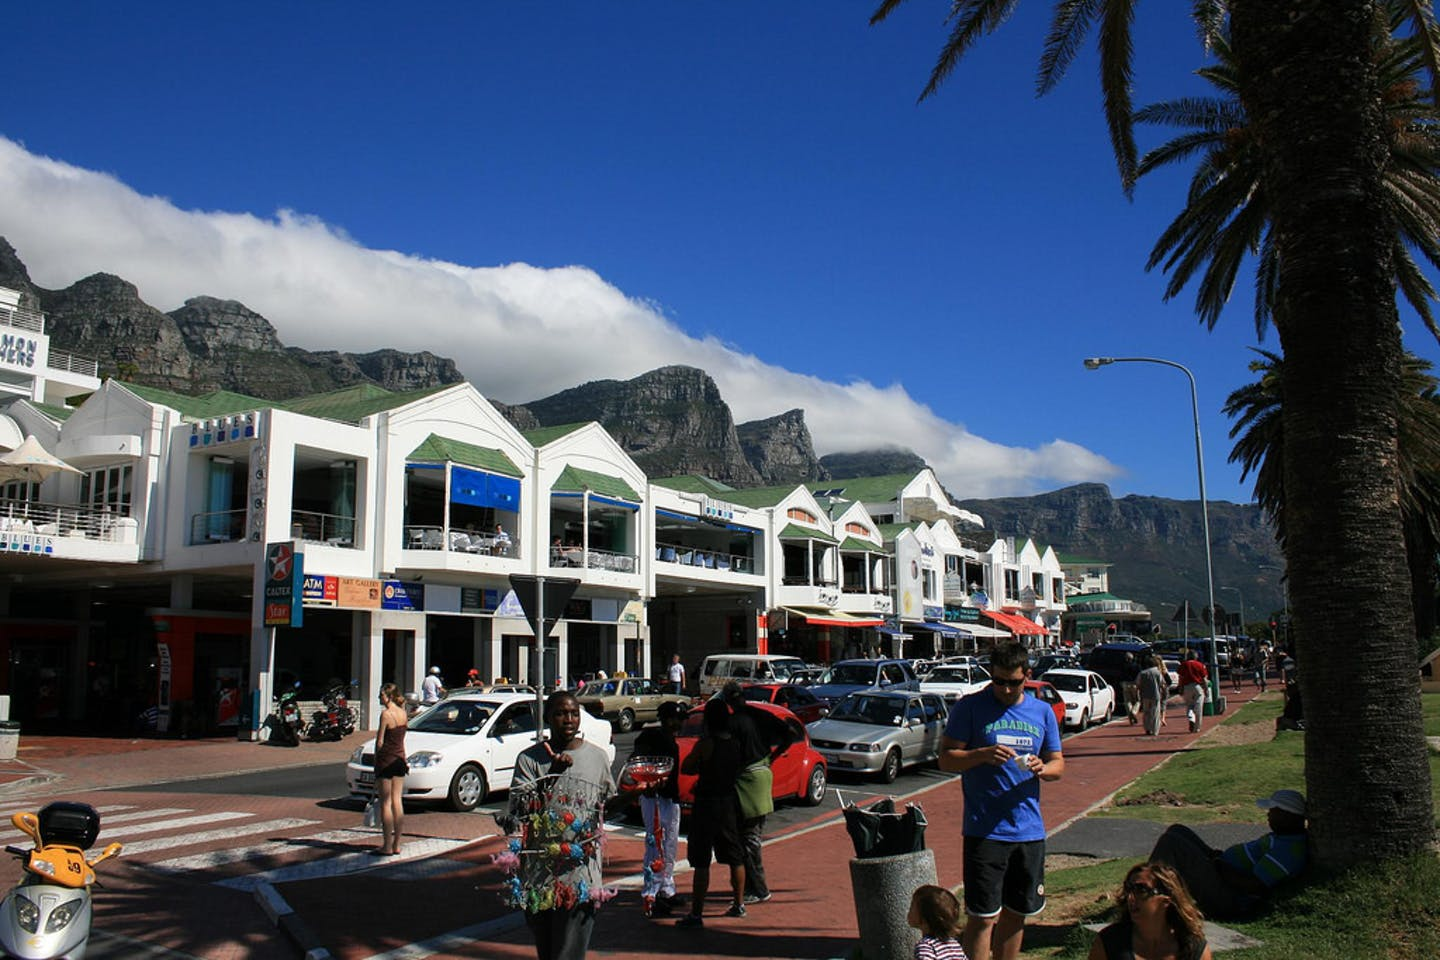 A street in Cape Town, South Africa